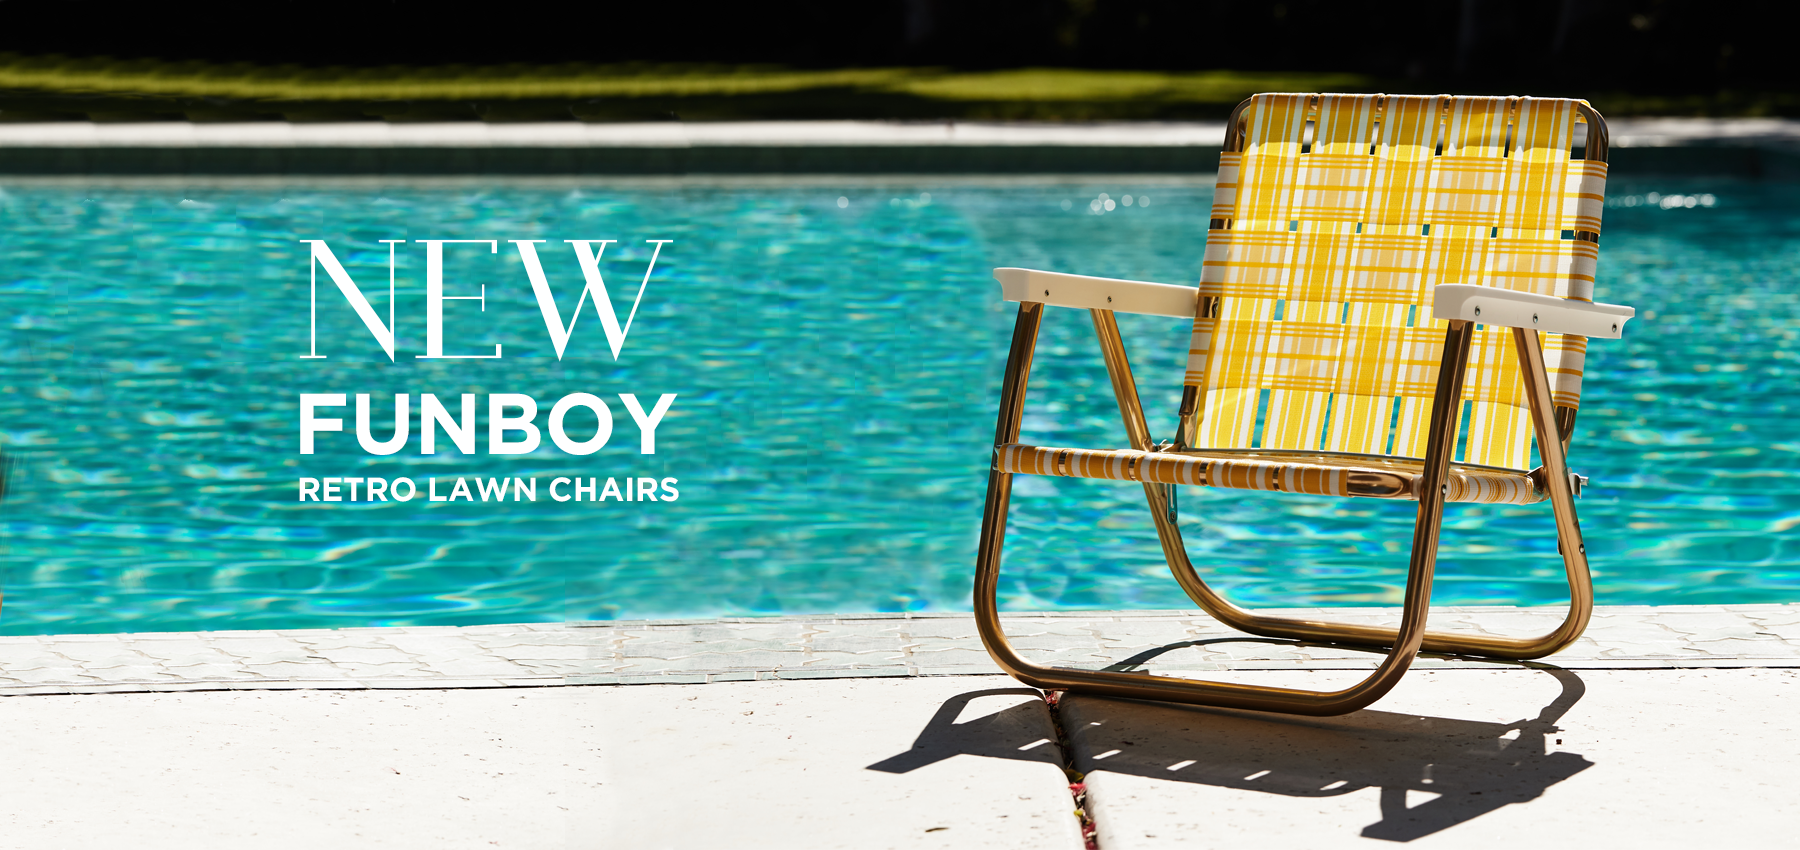 FUNBOY Retro Lawn Chairs